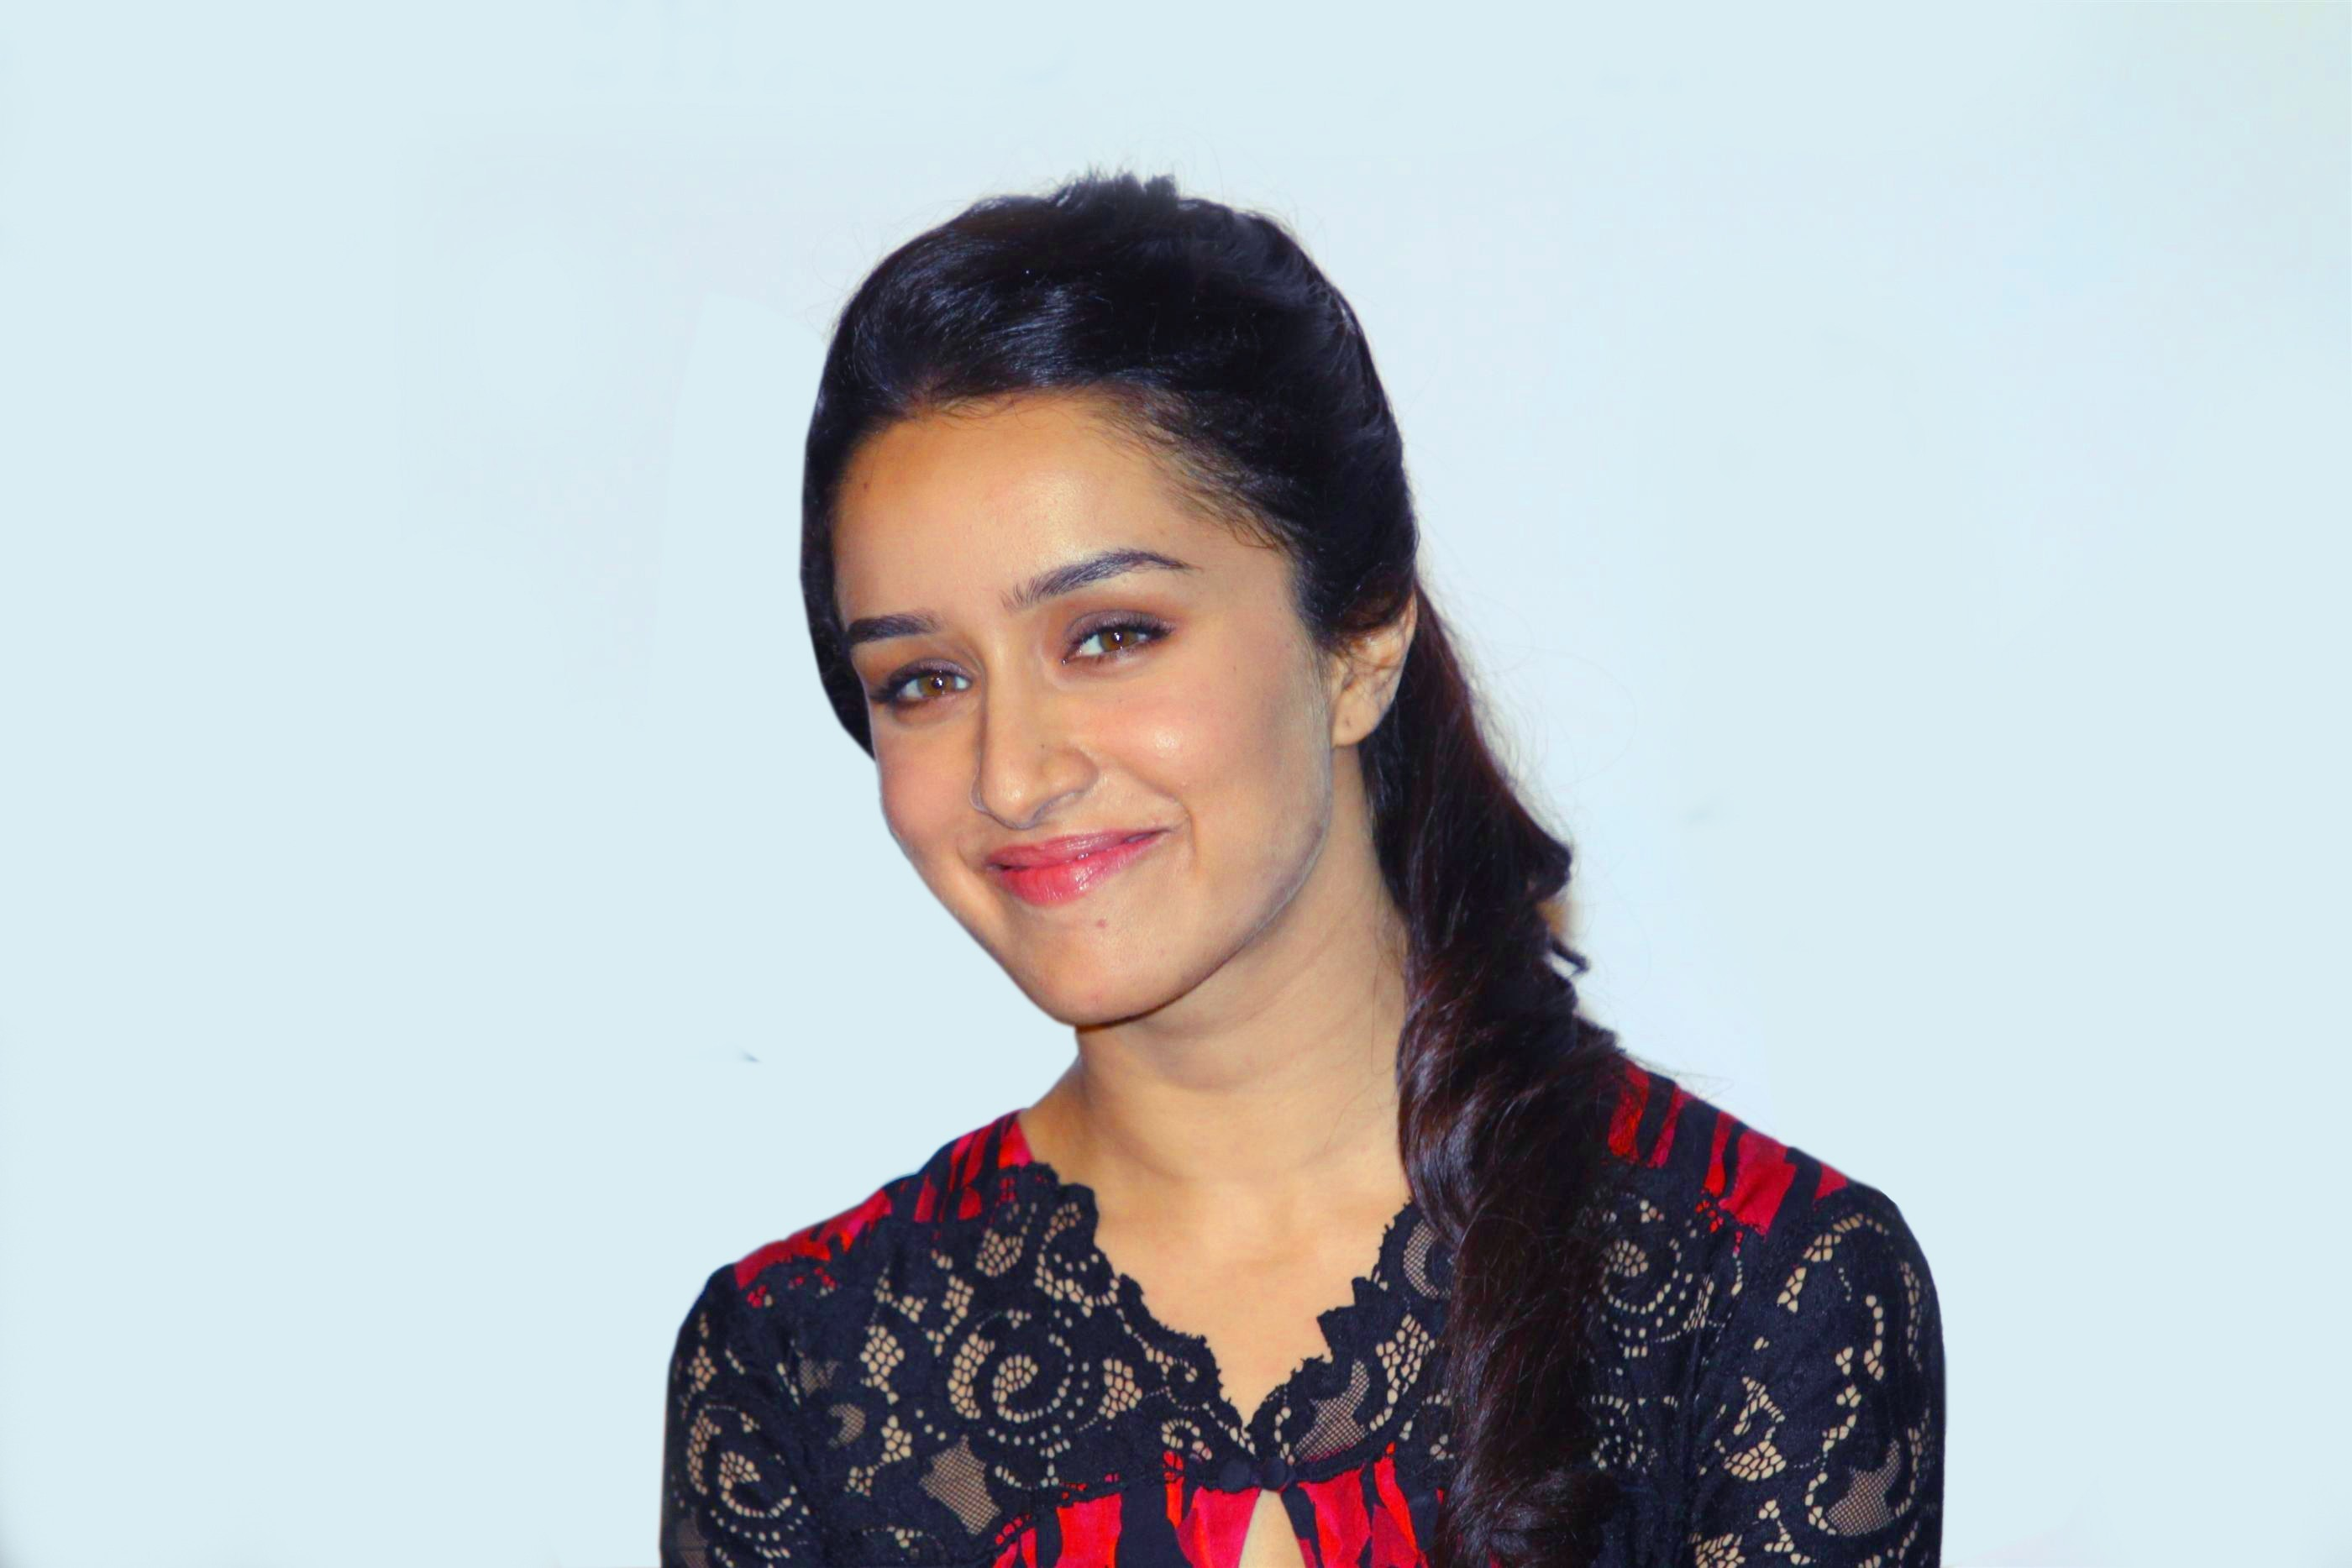 Cute Smile of Actress Shraddha Kapoor Photos HD Famous Wallpapers 2800x1867